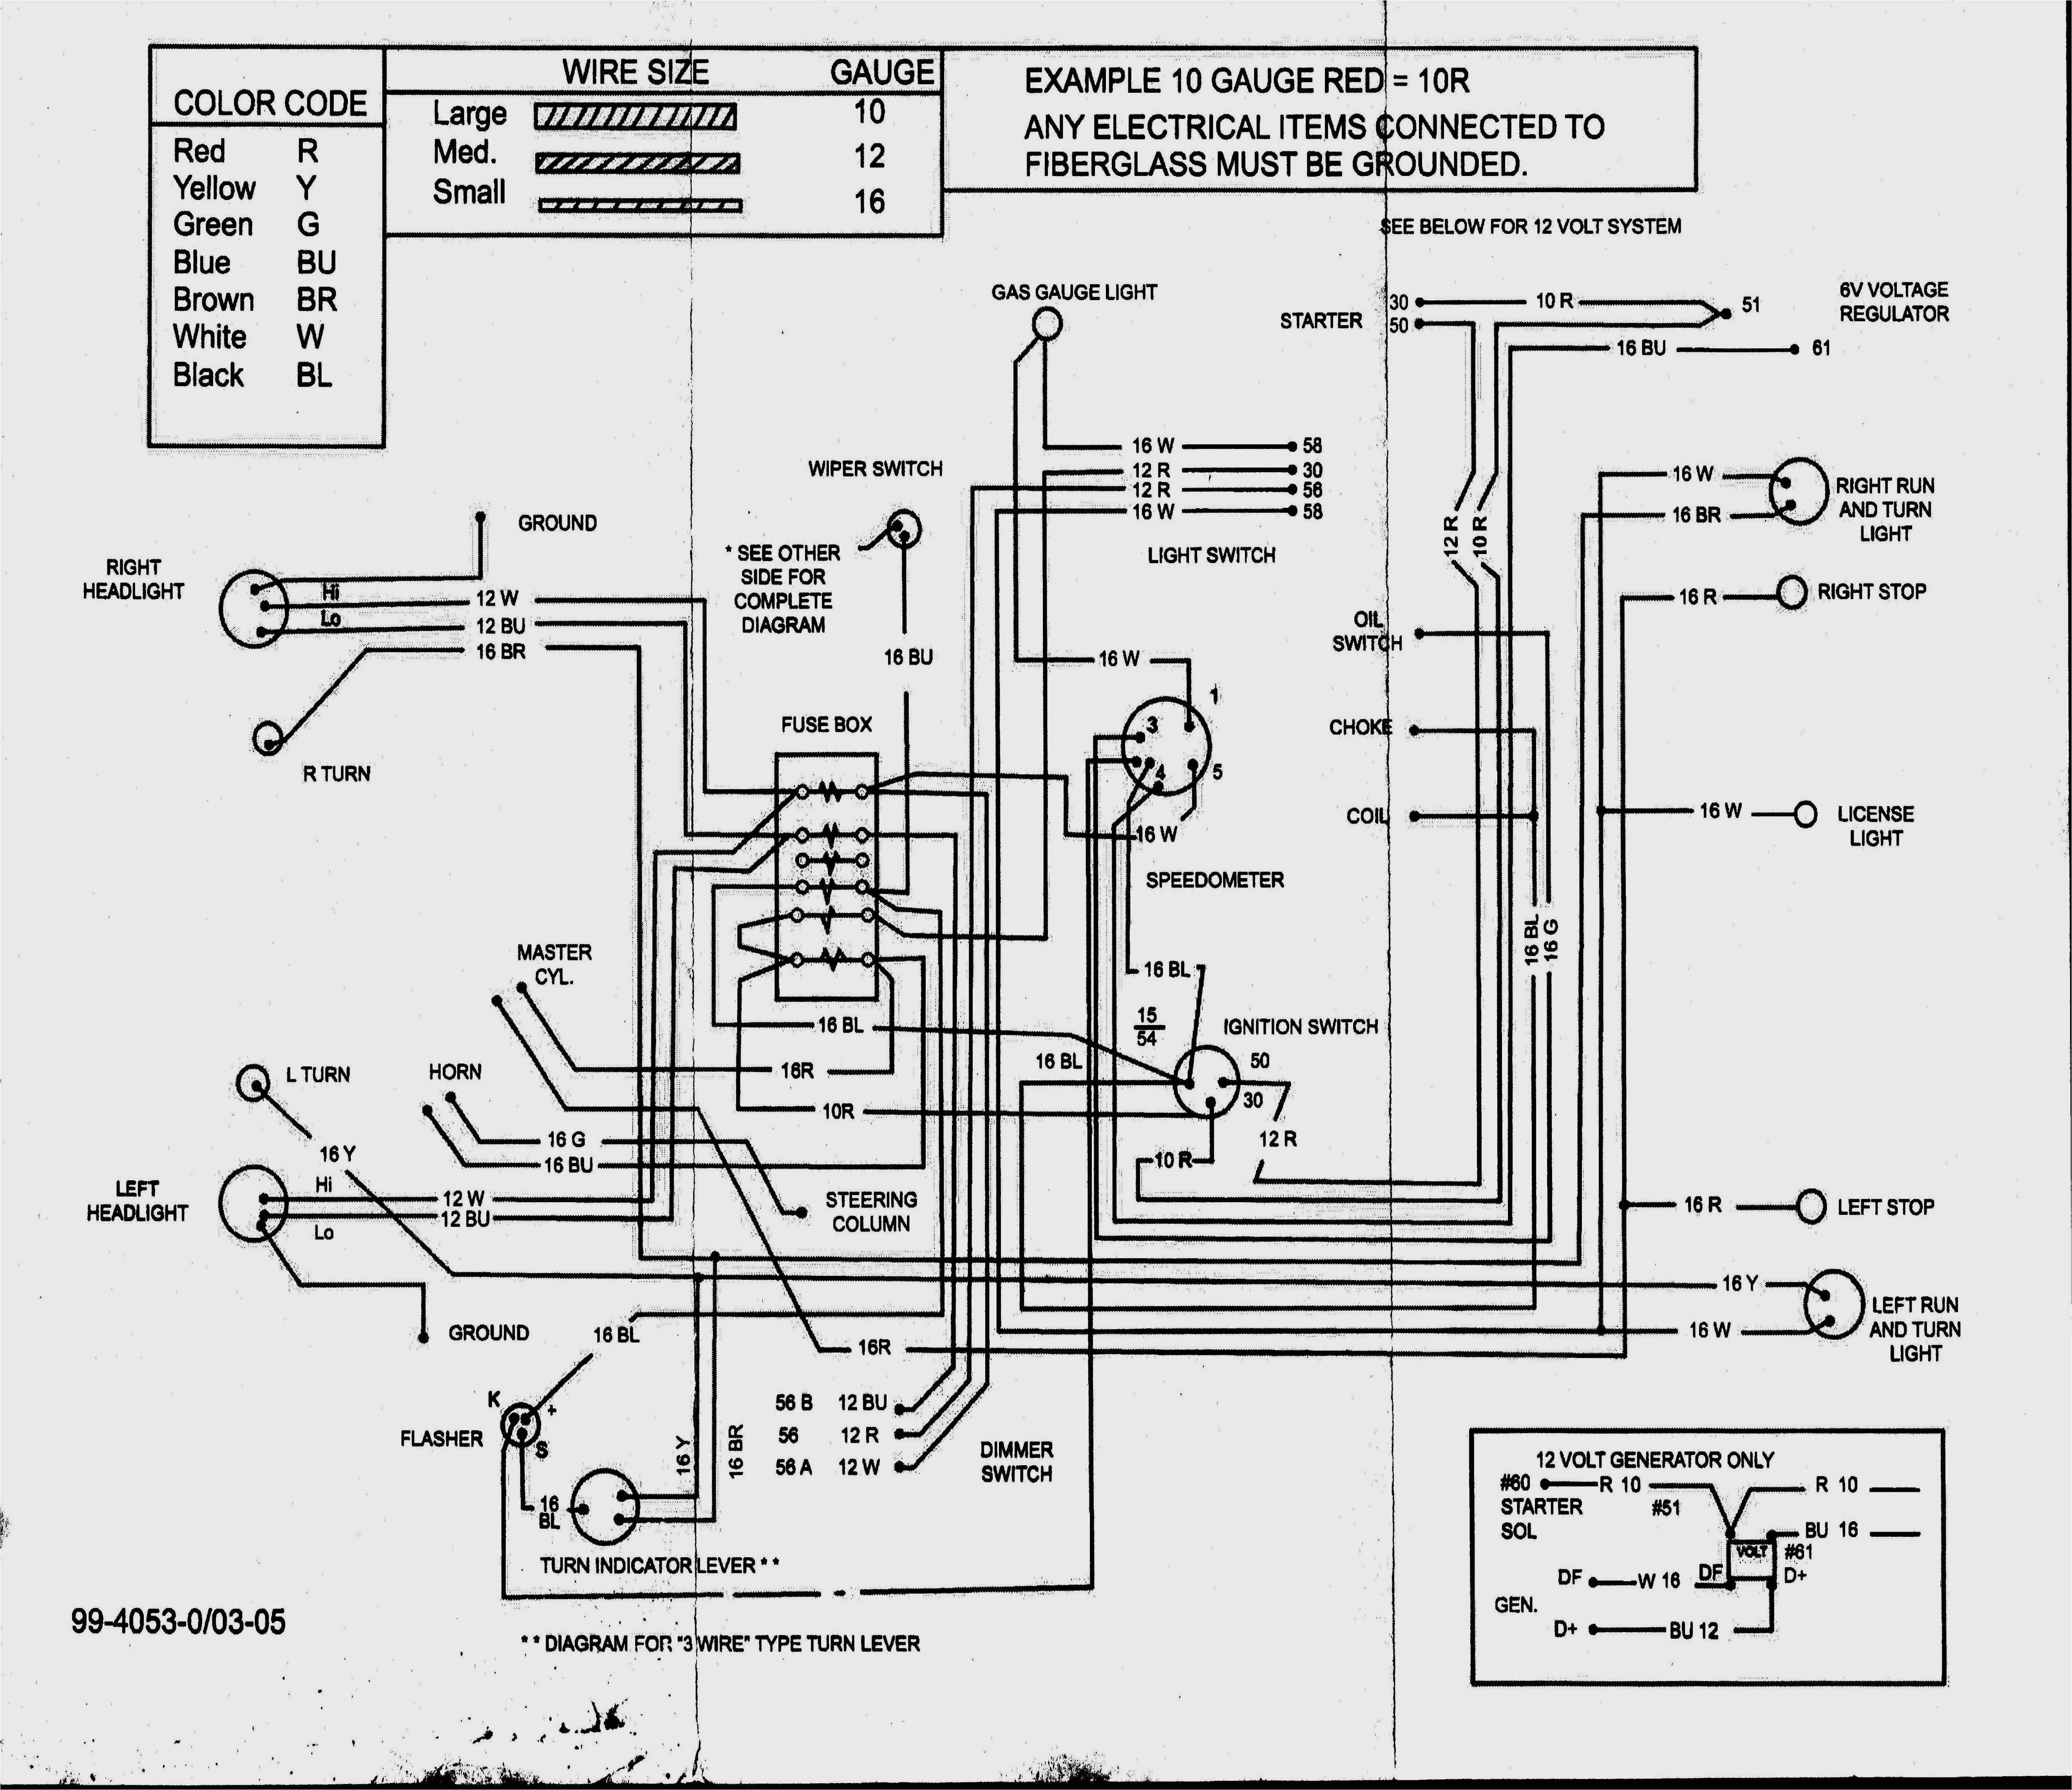 john deere 445 wiring diagram john deere 110 lawn mower wiring diagram car wiring diagrams rh ethermag co